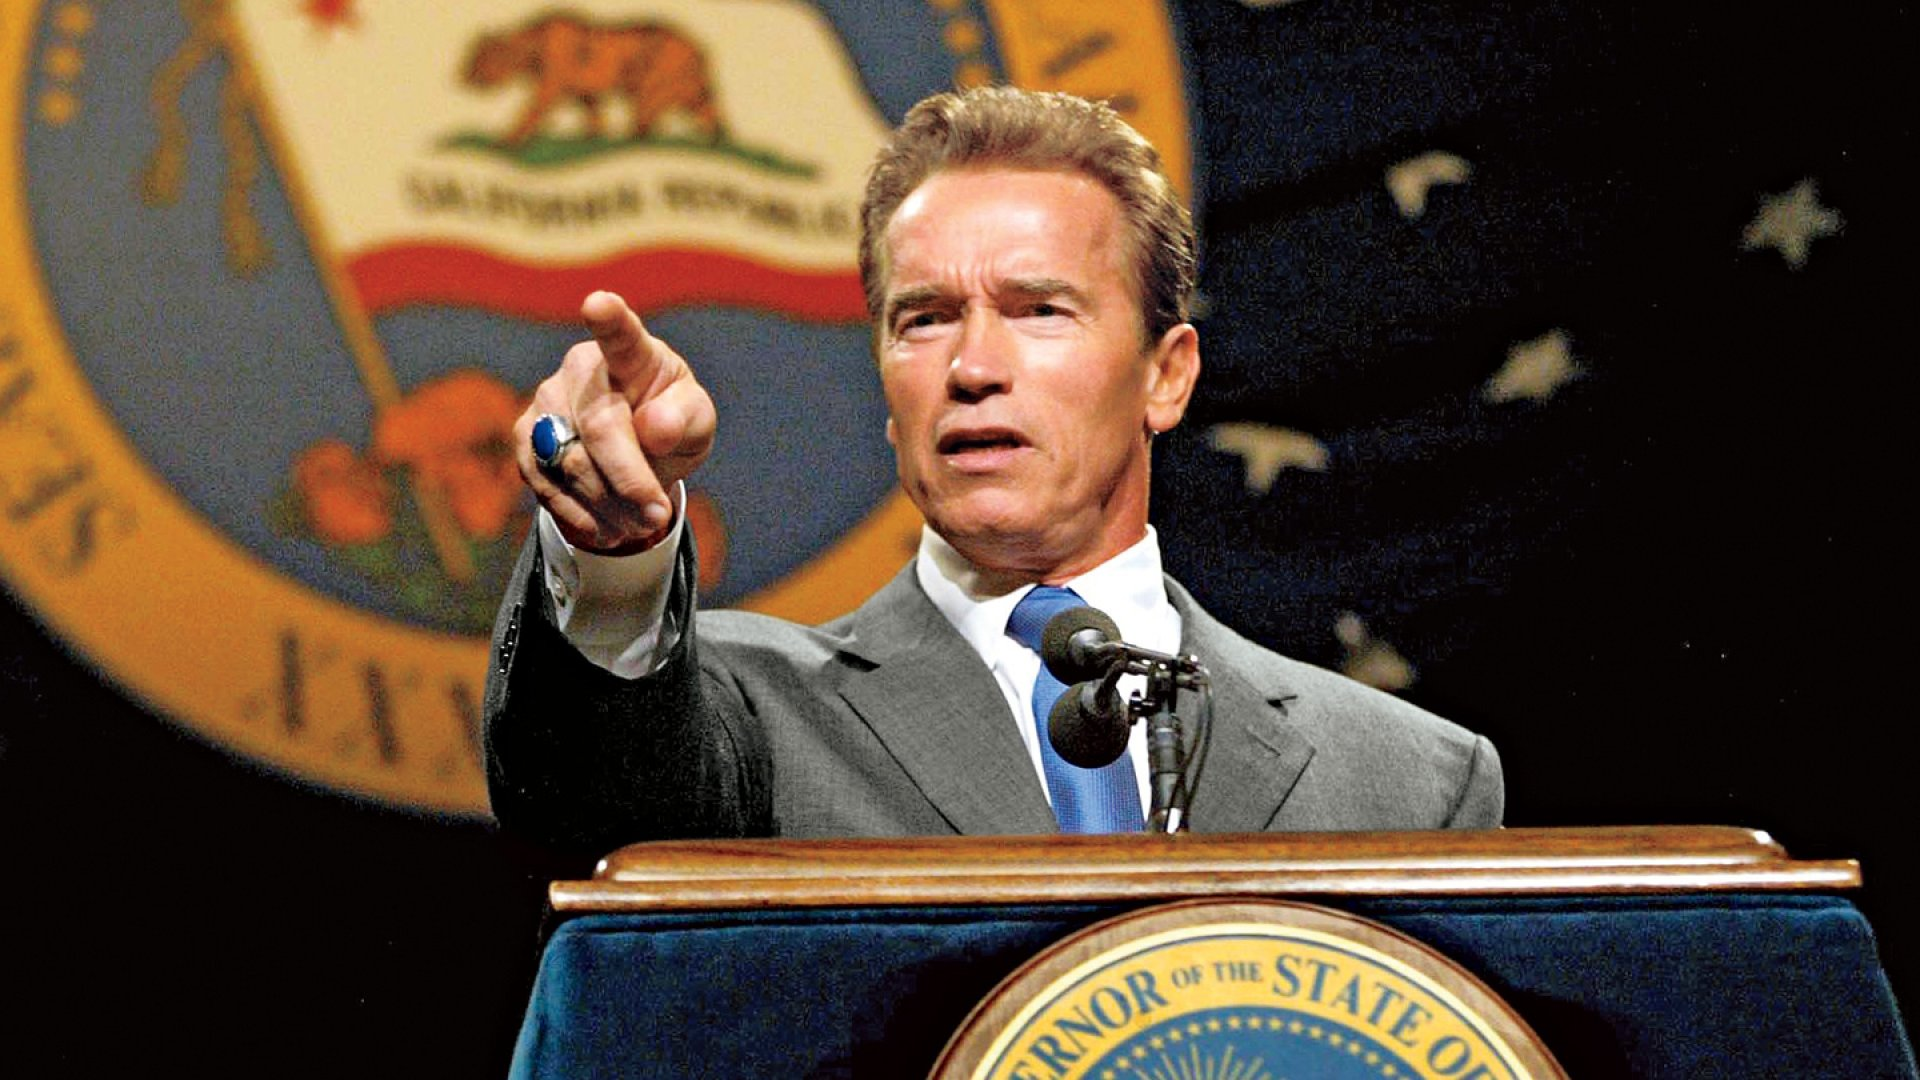 Will he be terminated?